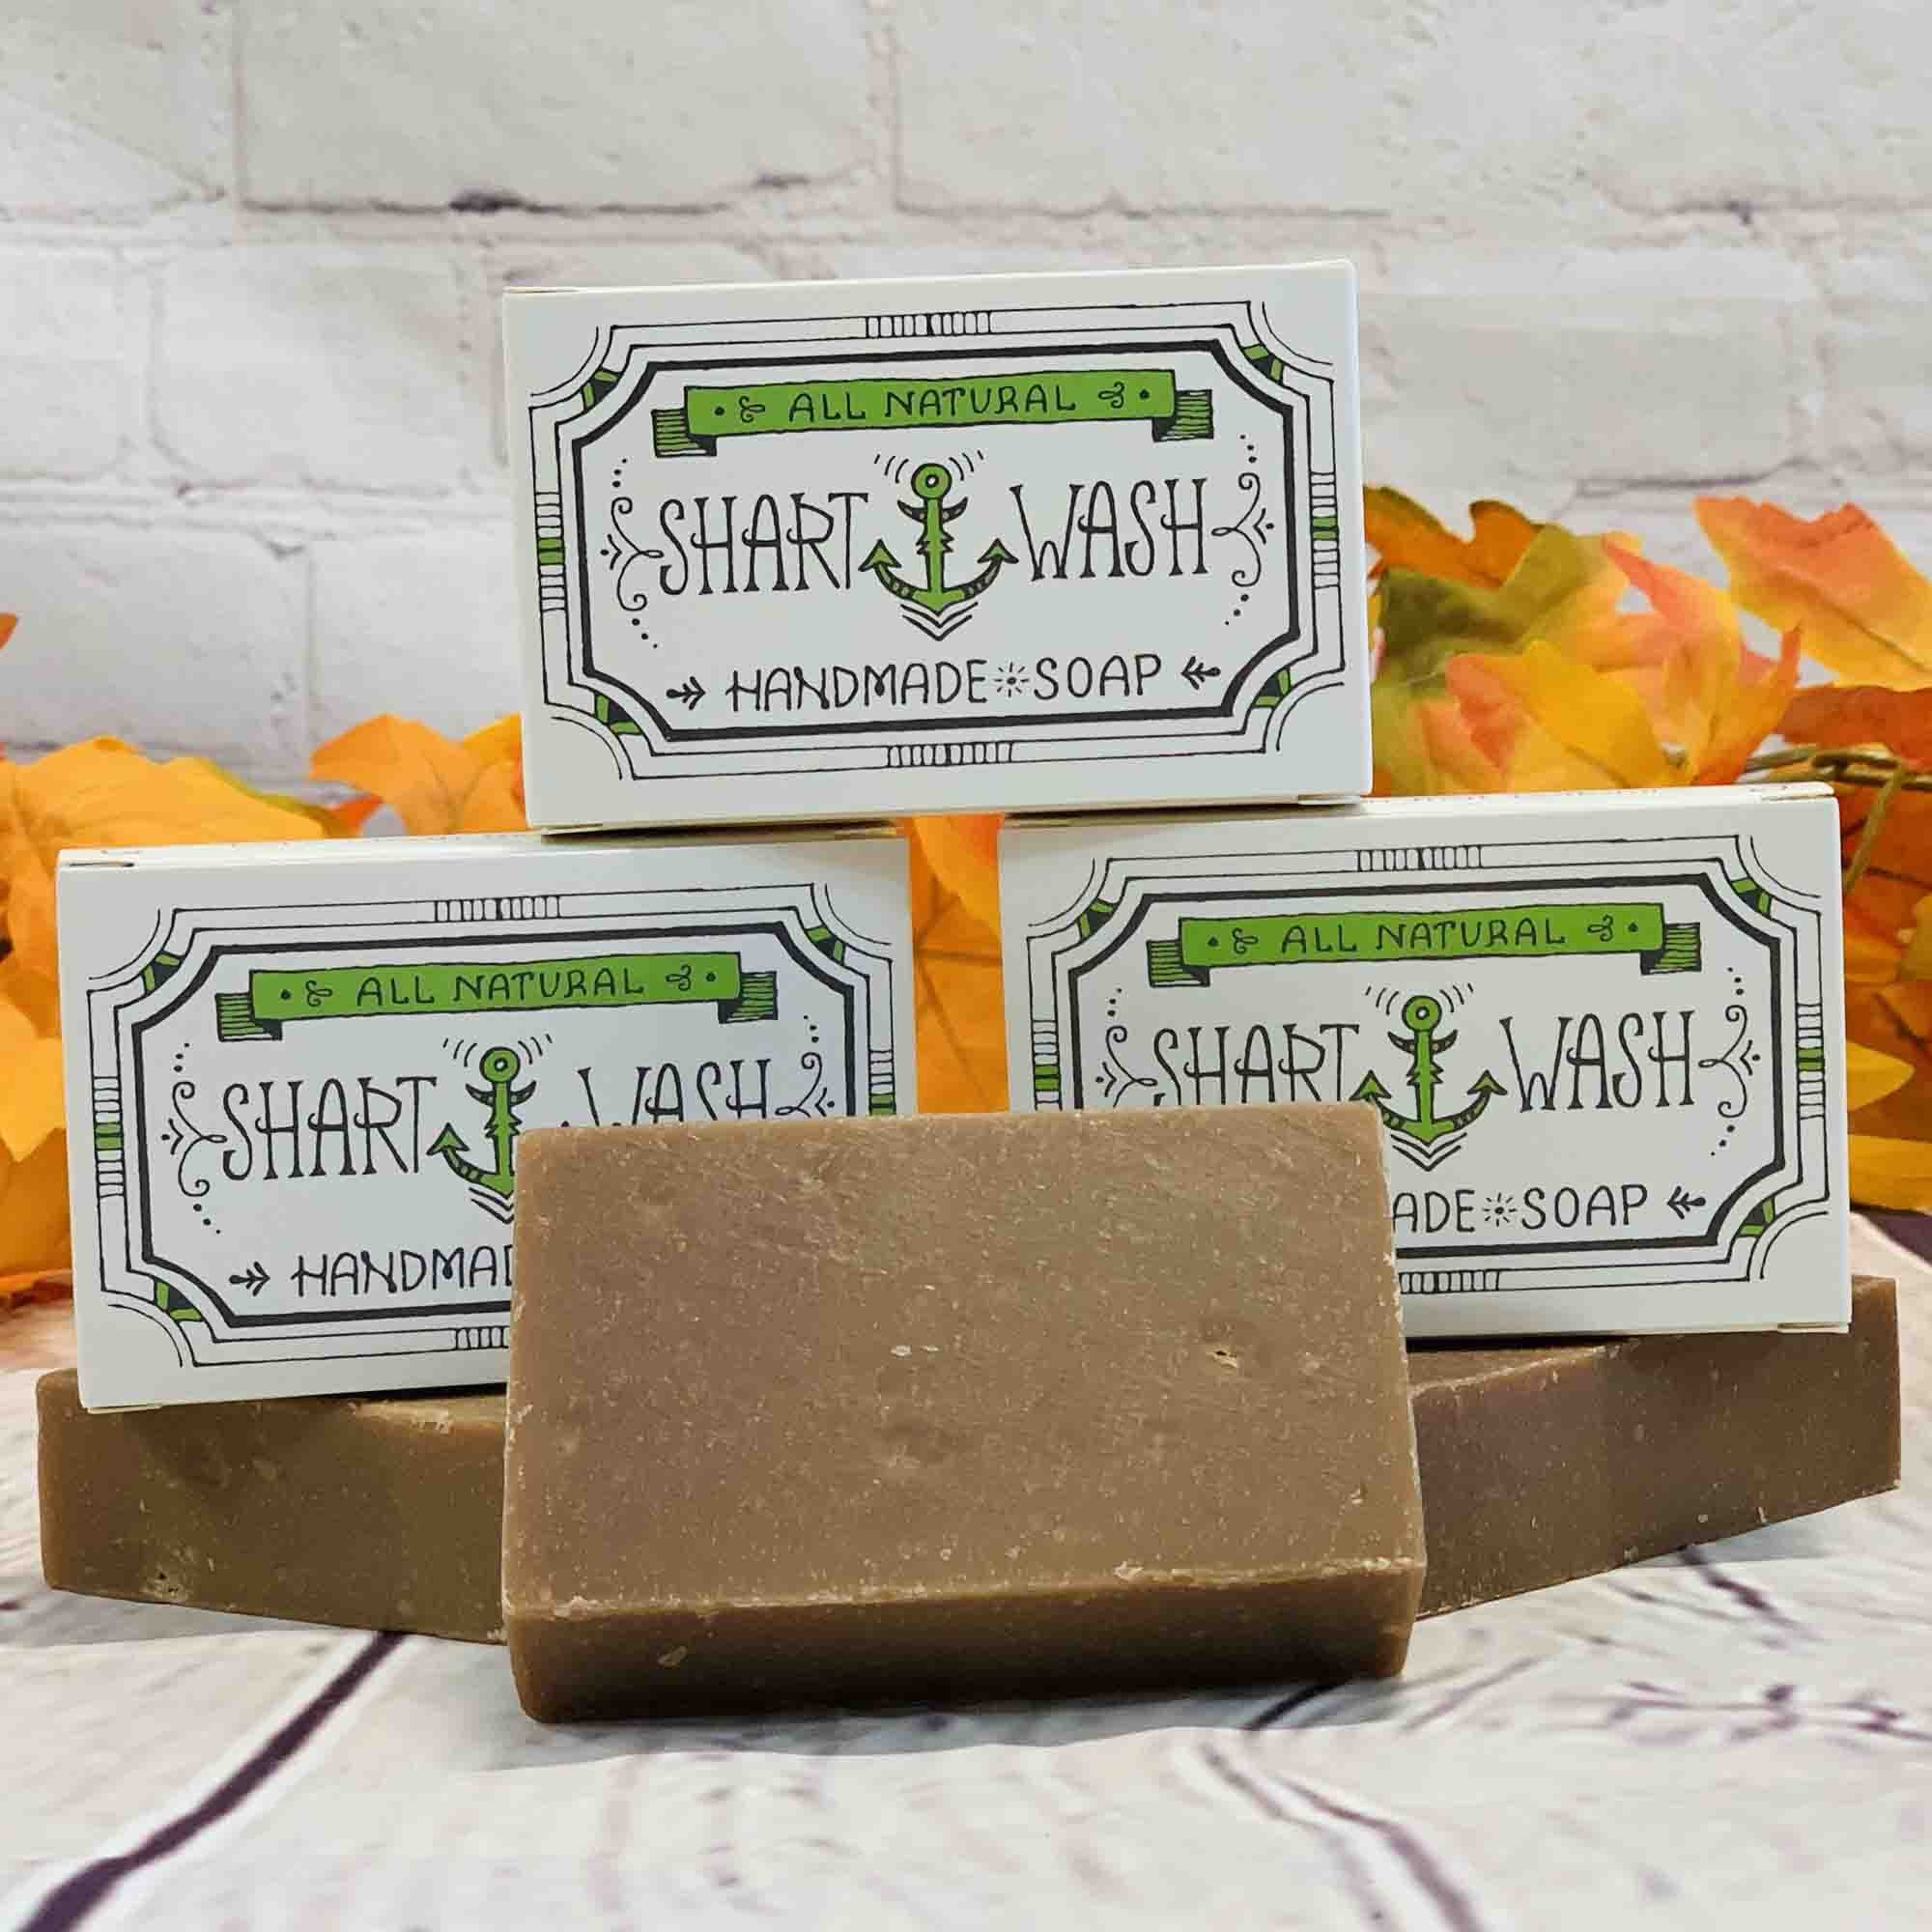 picture of 3 brown bars of Pumpkin Spice Latte scent shart wash handmade soap on a wood background with orange and yellow autumn leaves and a pinecone